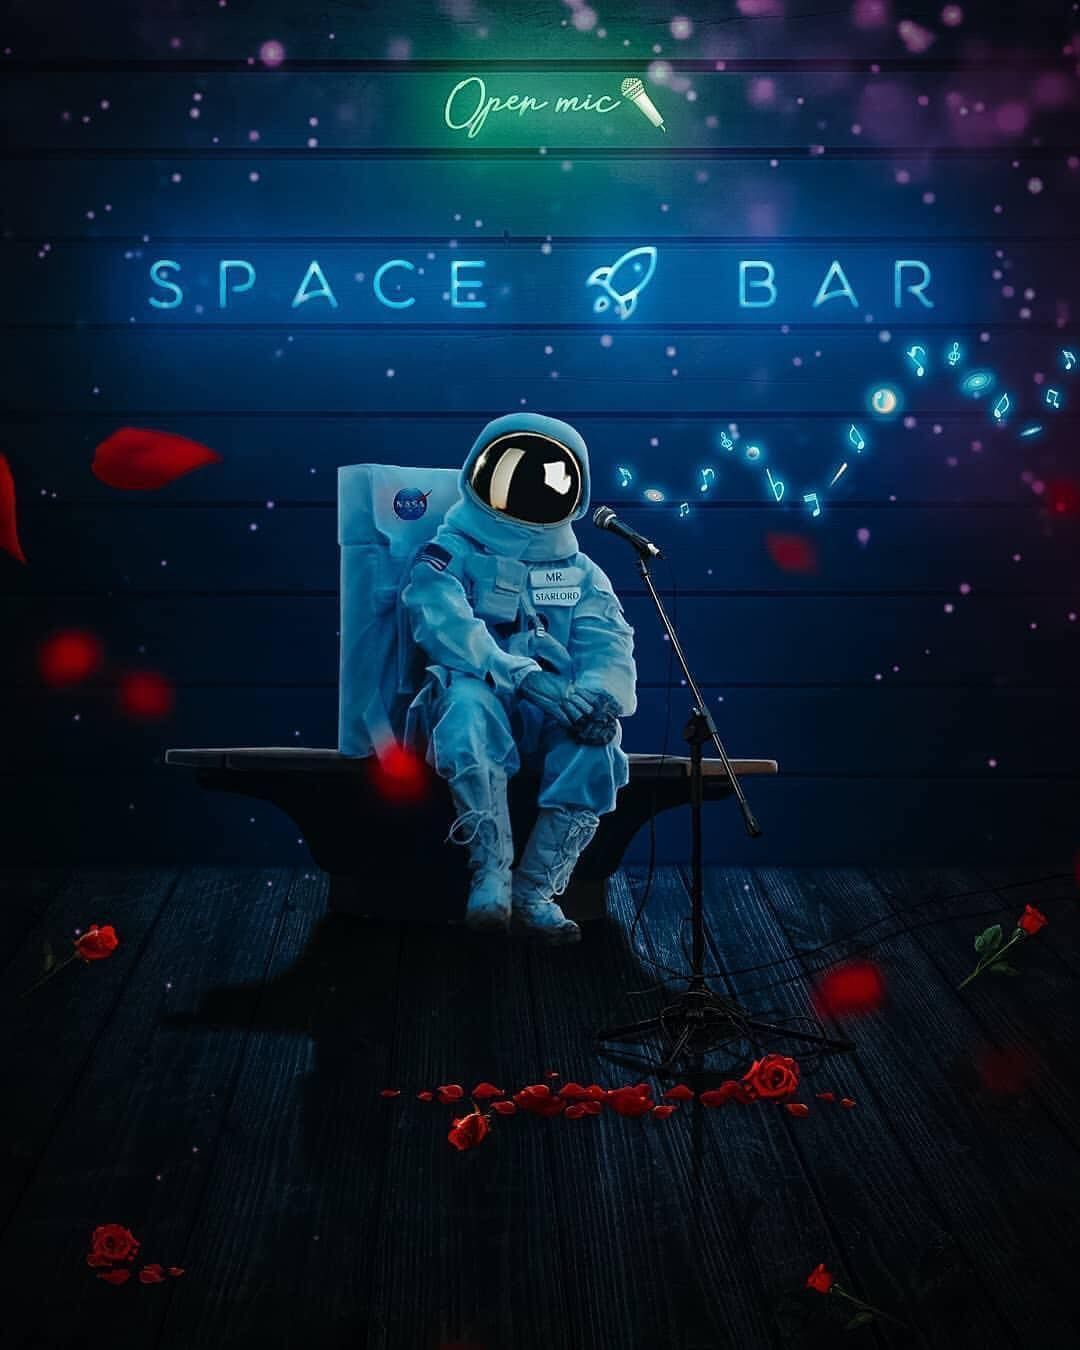 40 Astronaut Aesthetic Android Iphone Desktop Hd Backgrounds Wallpapers 1080p 4k 1080x1350 2020